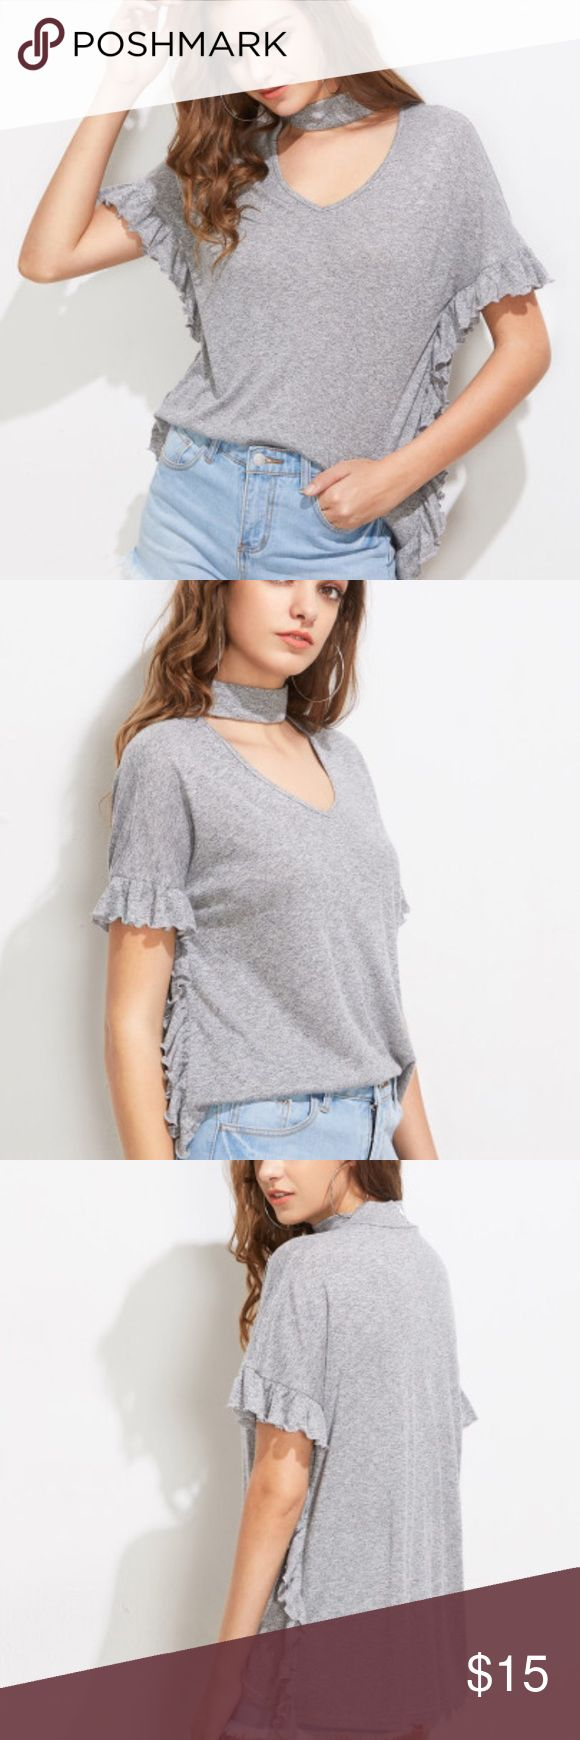 NWOT Gray Choker neckline batwing T-shirt Very cute casual top. Should fit anywhere from a 0-4 because it can be worn baggy or fitted. Can easily be dressed up or dressed down. Offers welcomed. *** pairs well with my NWT Zara high rise stripe denimwear/ Banana Republic windowpane Ryan pants/ NWT faux leather skirt boutique Tops Tees - Short Sleeve